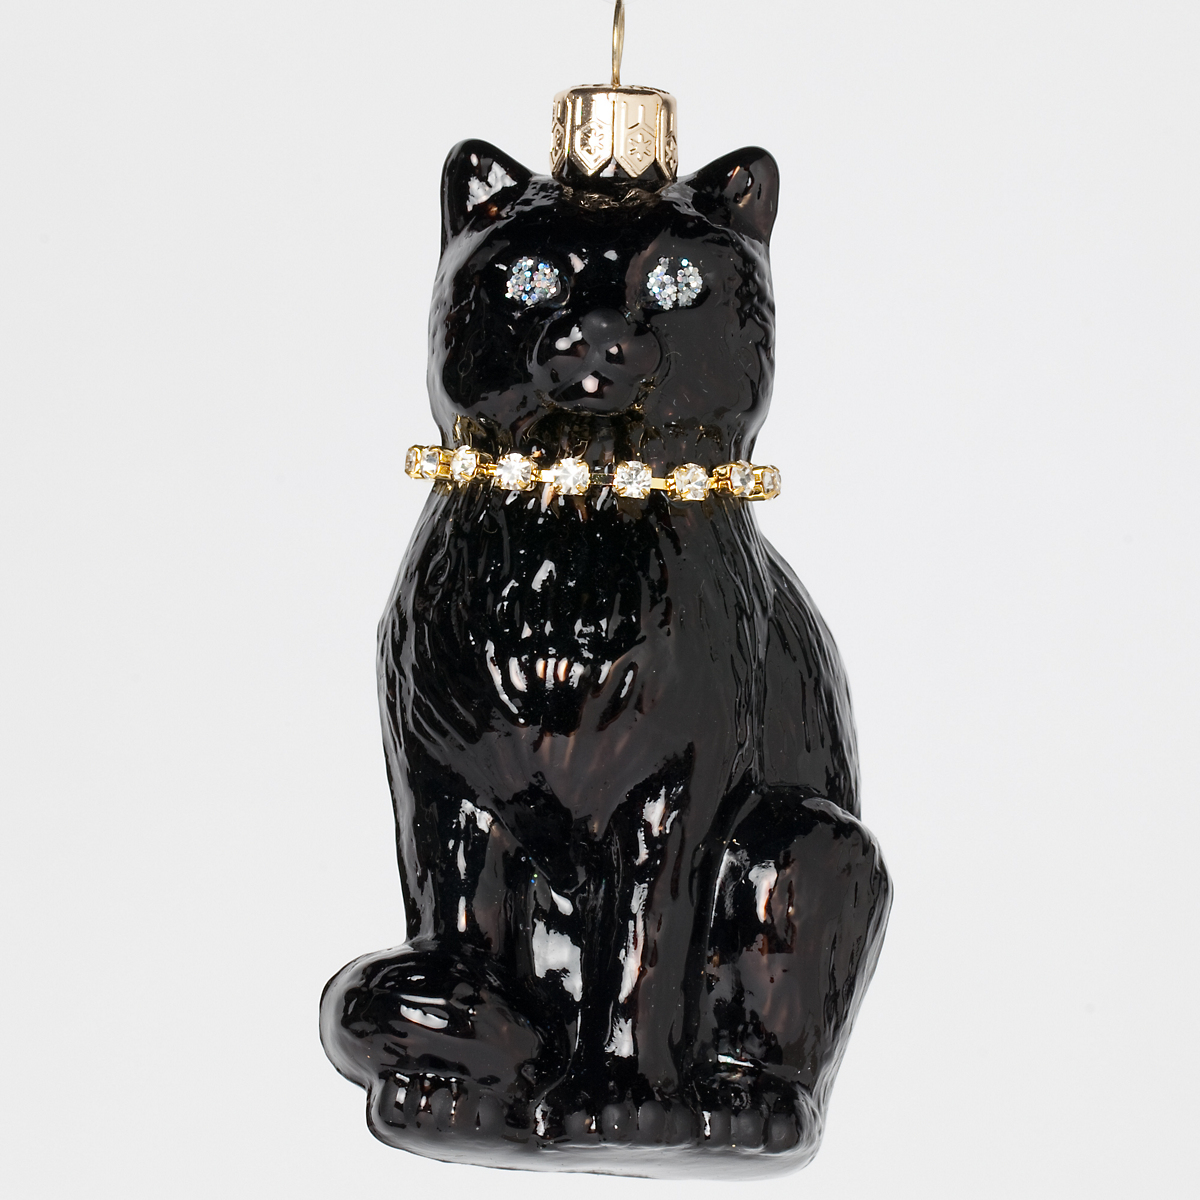 Pedigreed Cat Ornaments